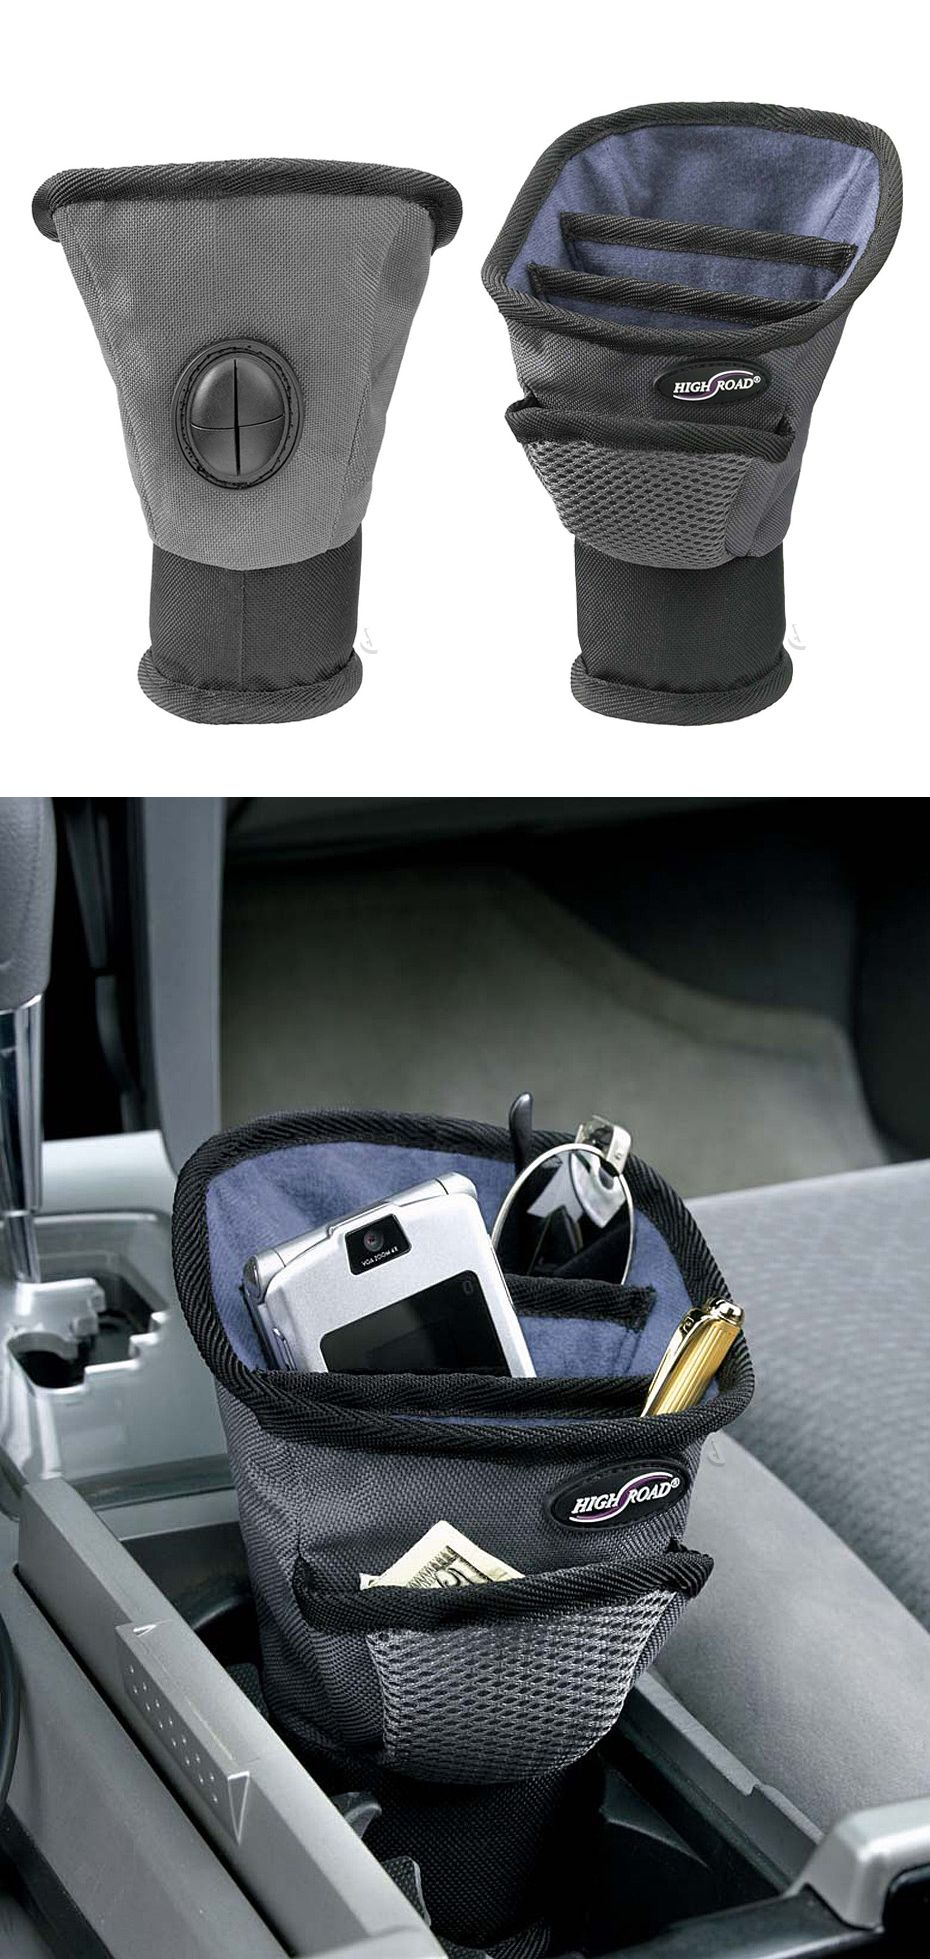 Driver cup // keeps driver roadside essentials nearby, a useful organizer for the cup holder! Clever idea! #product_design